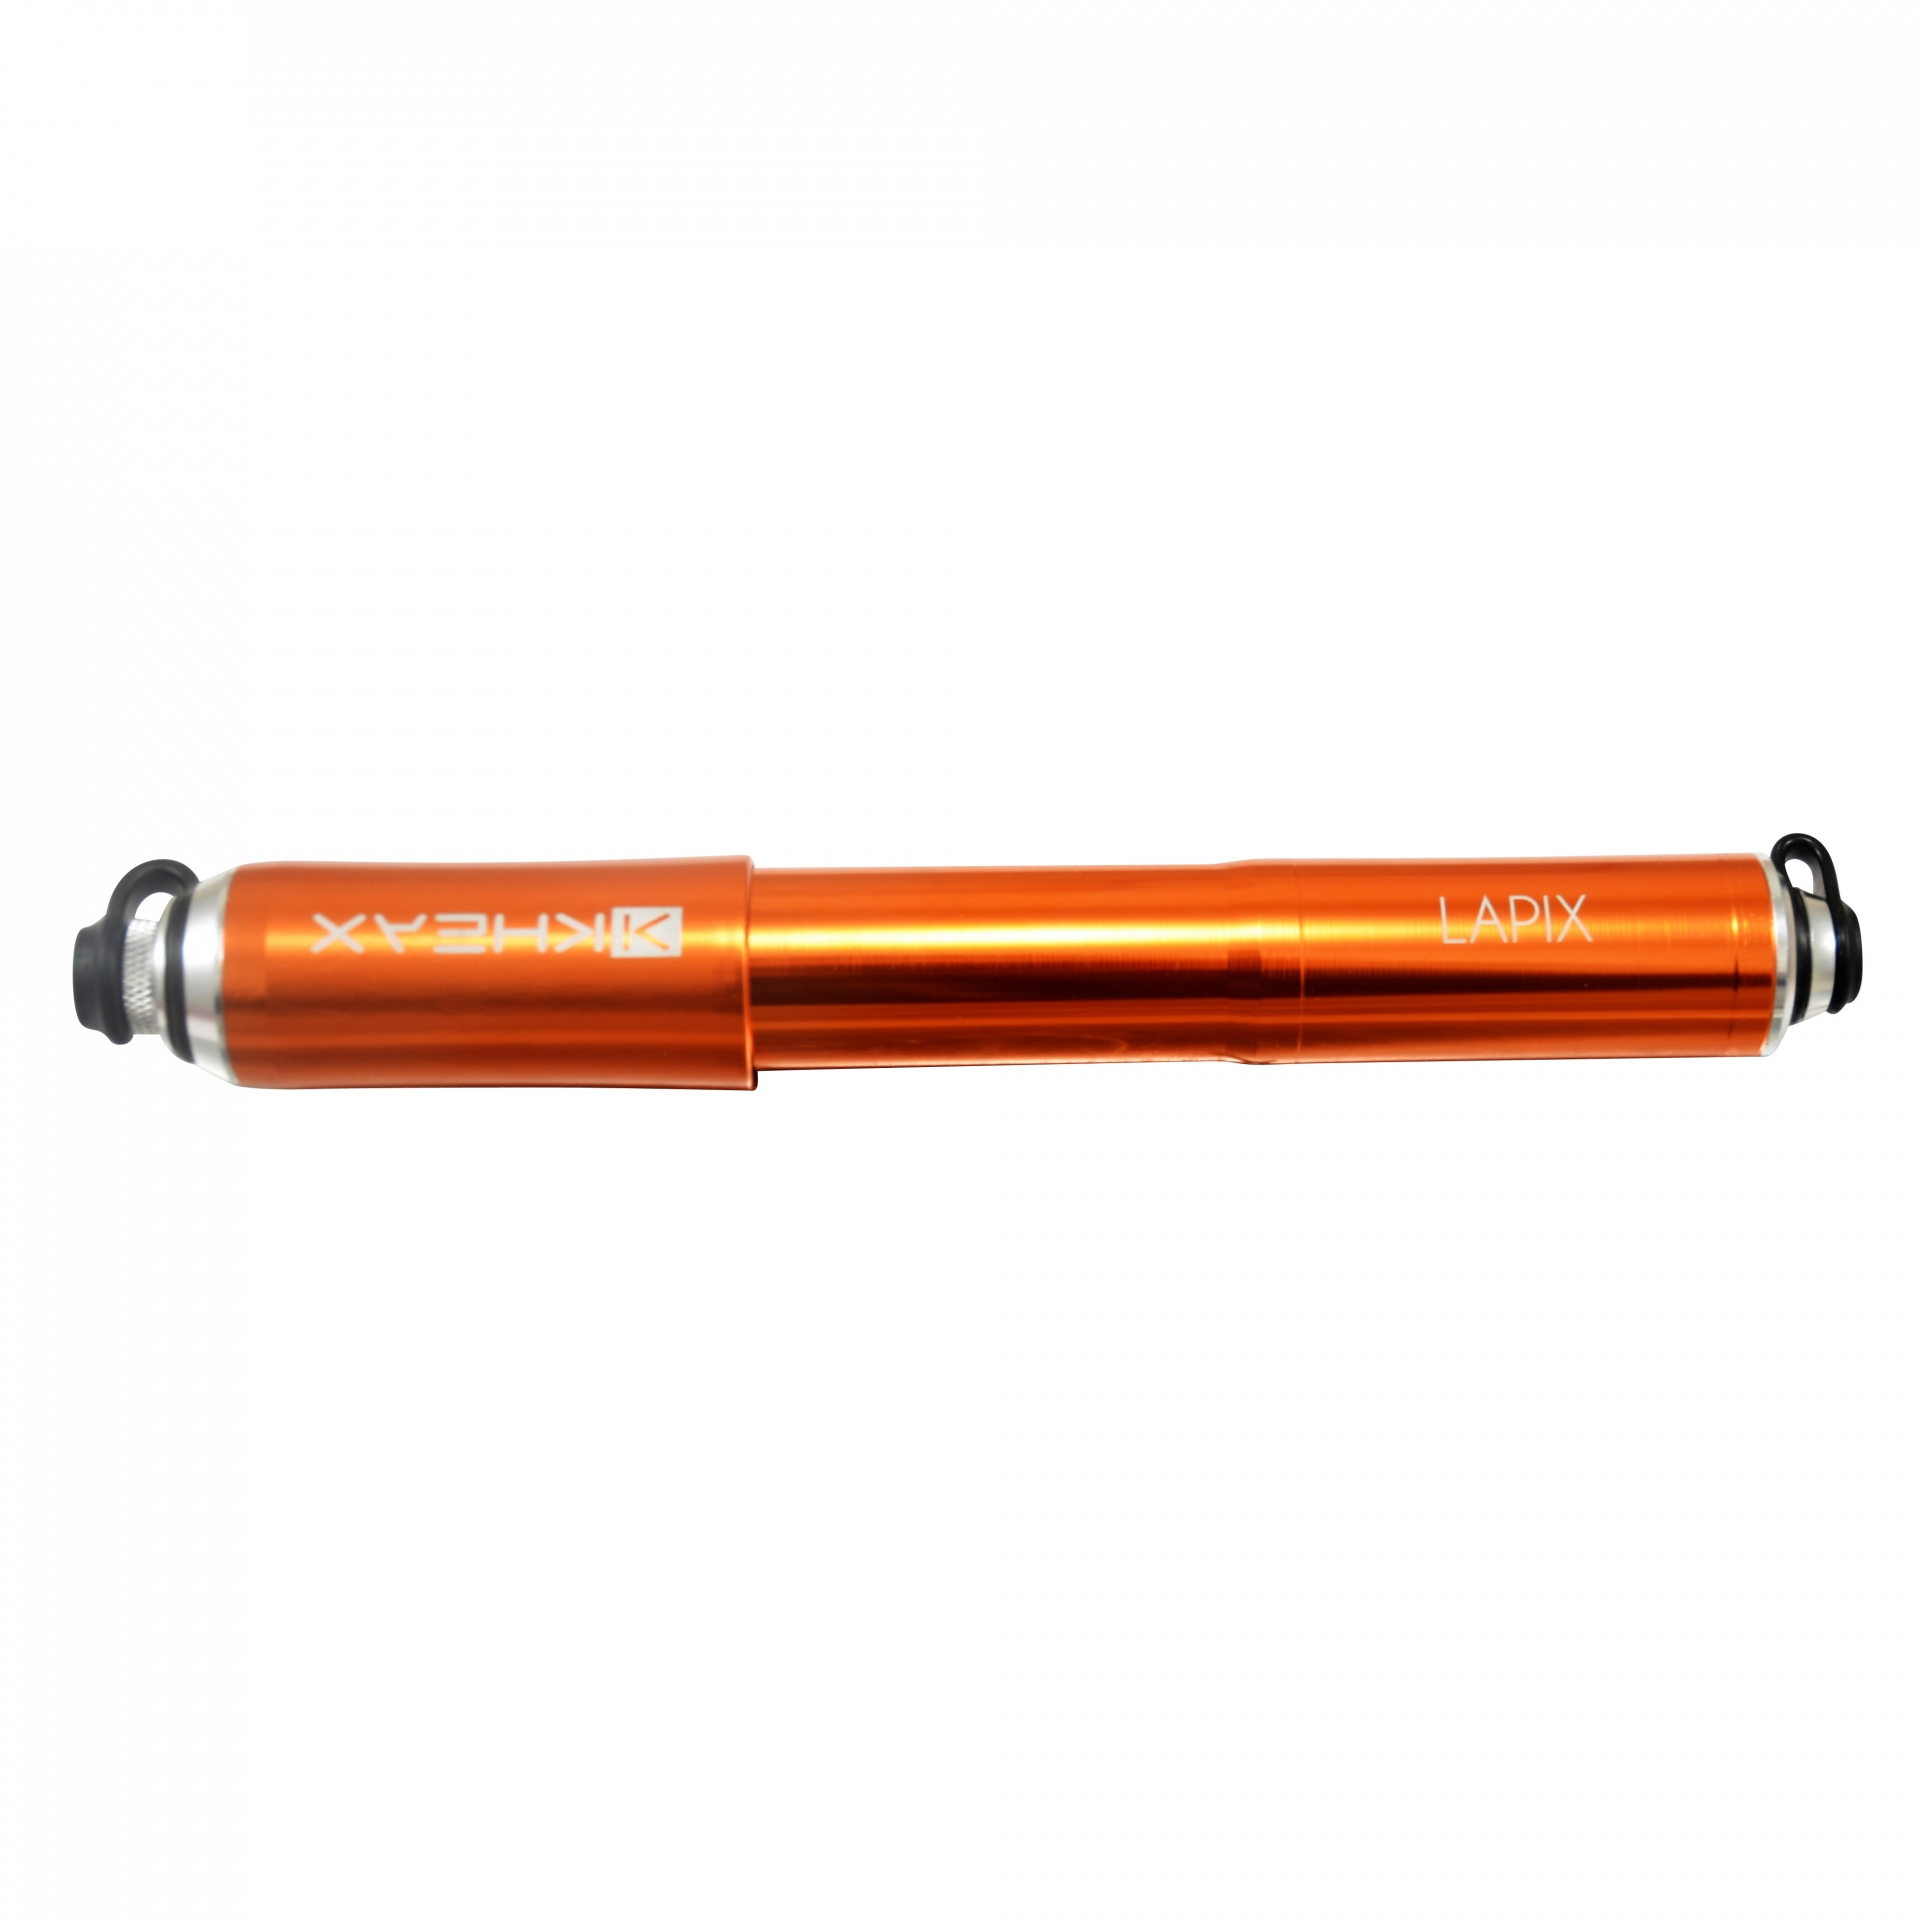 Mini pompe KHEAX Lapix VTT M Orange (225 mm)